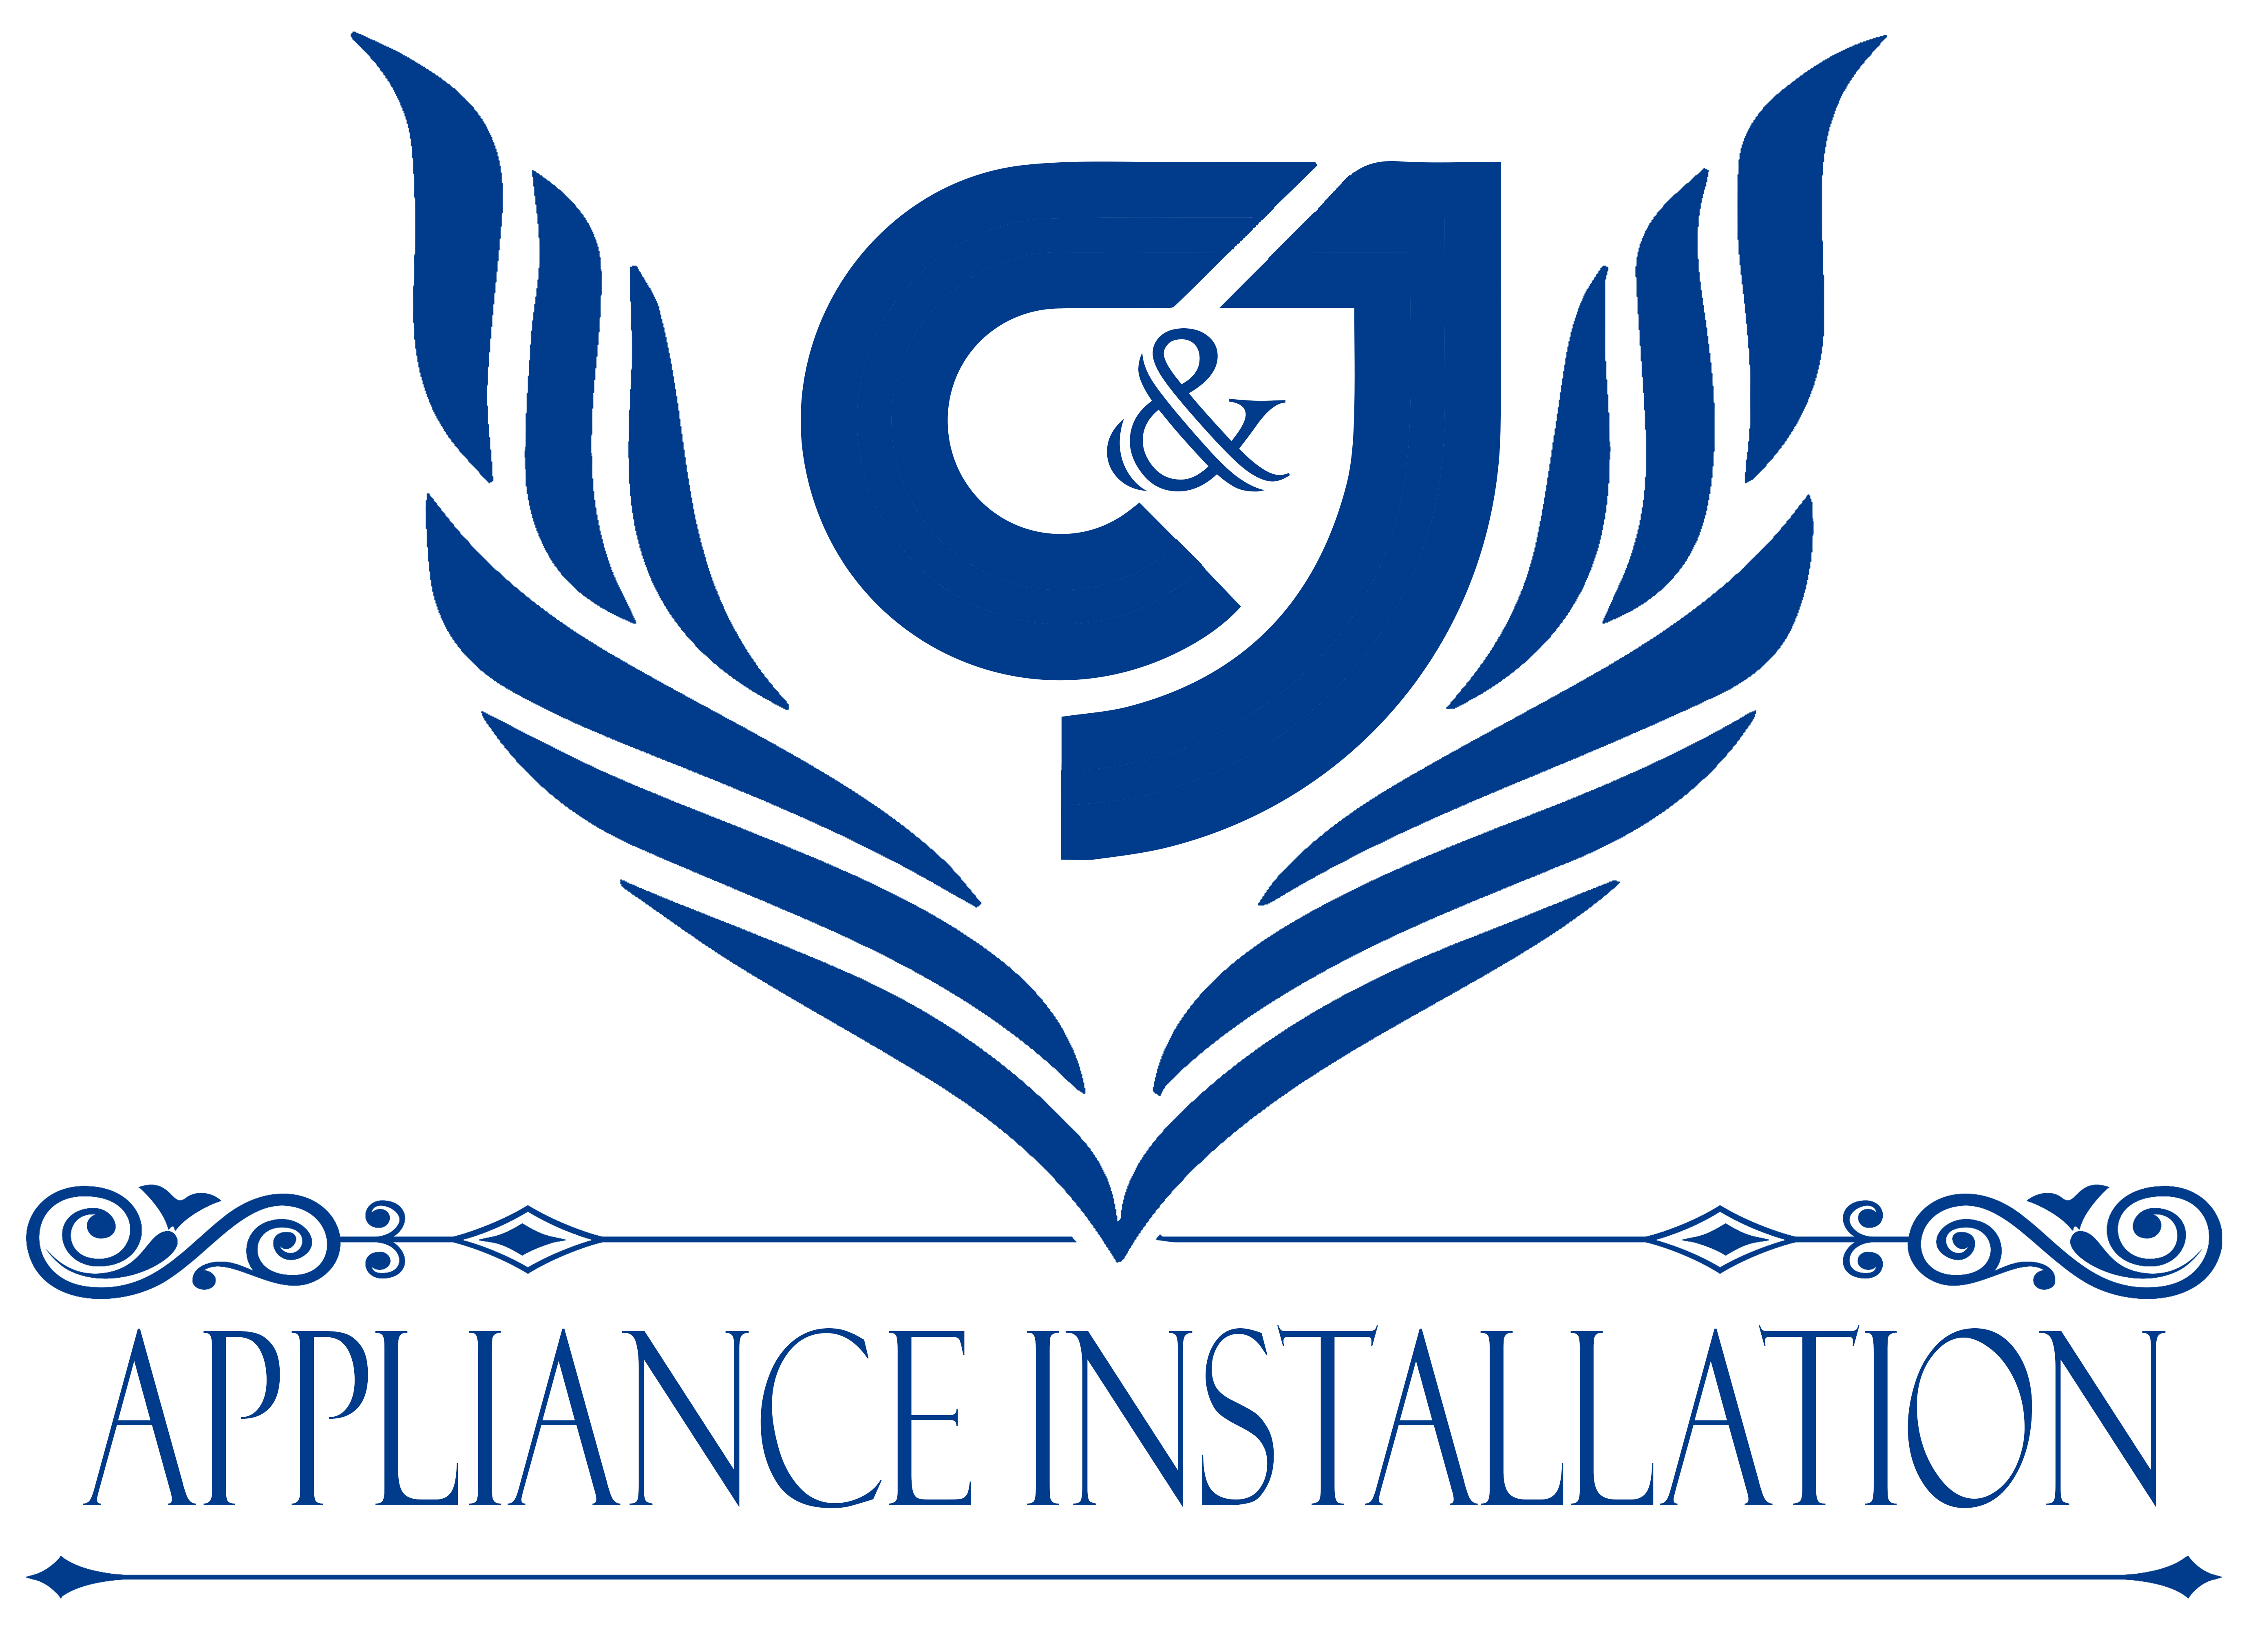 C&J Appliance Installations Announces Highly Competitive Pricing With Its Latest Price Revision